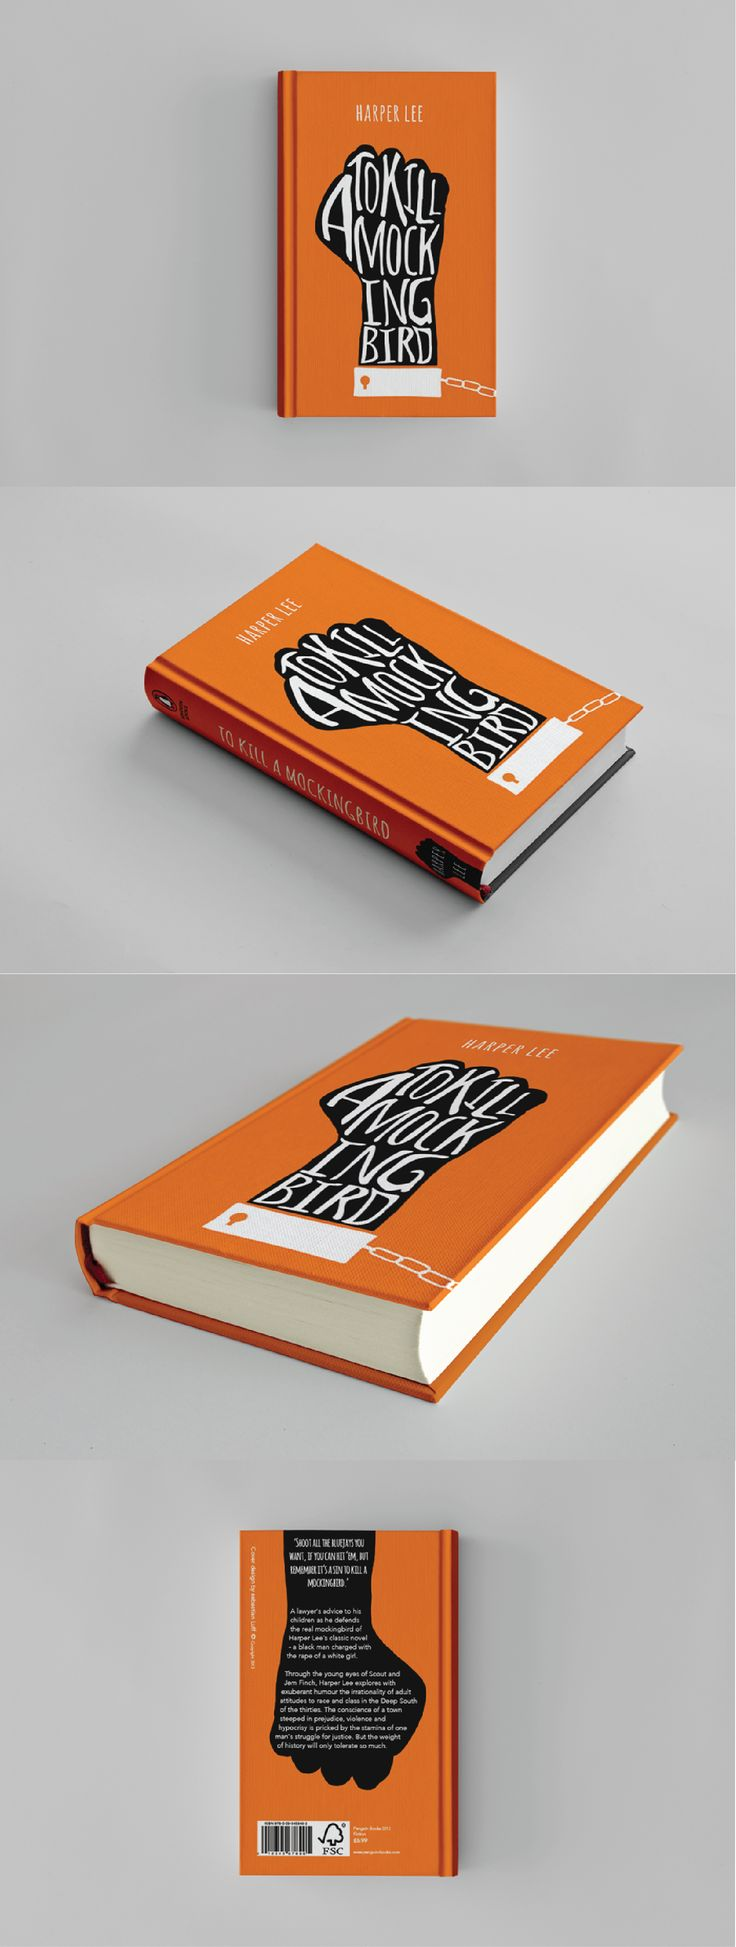 I was assigned the task of creating a contemporary book cover for Penguin books.  www.sebastianandreas.co.uk